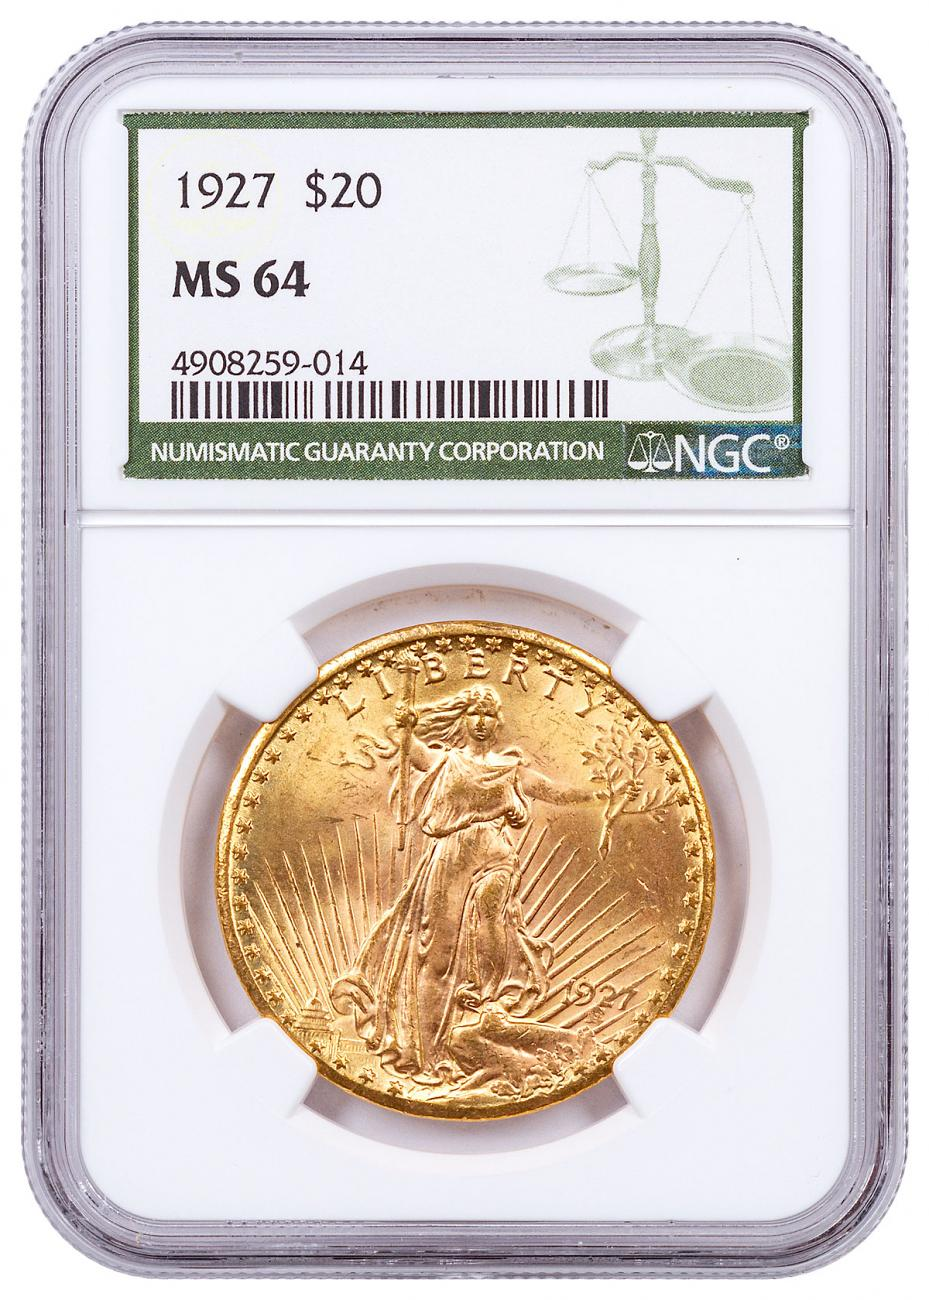 1927 Saint-Gaudens $20 Gold Double Eagle NGC MS64 Green Label